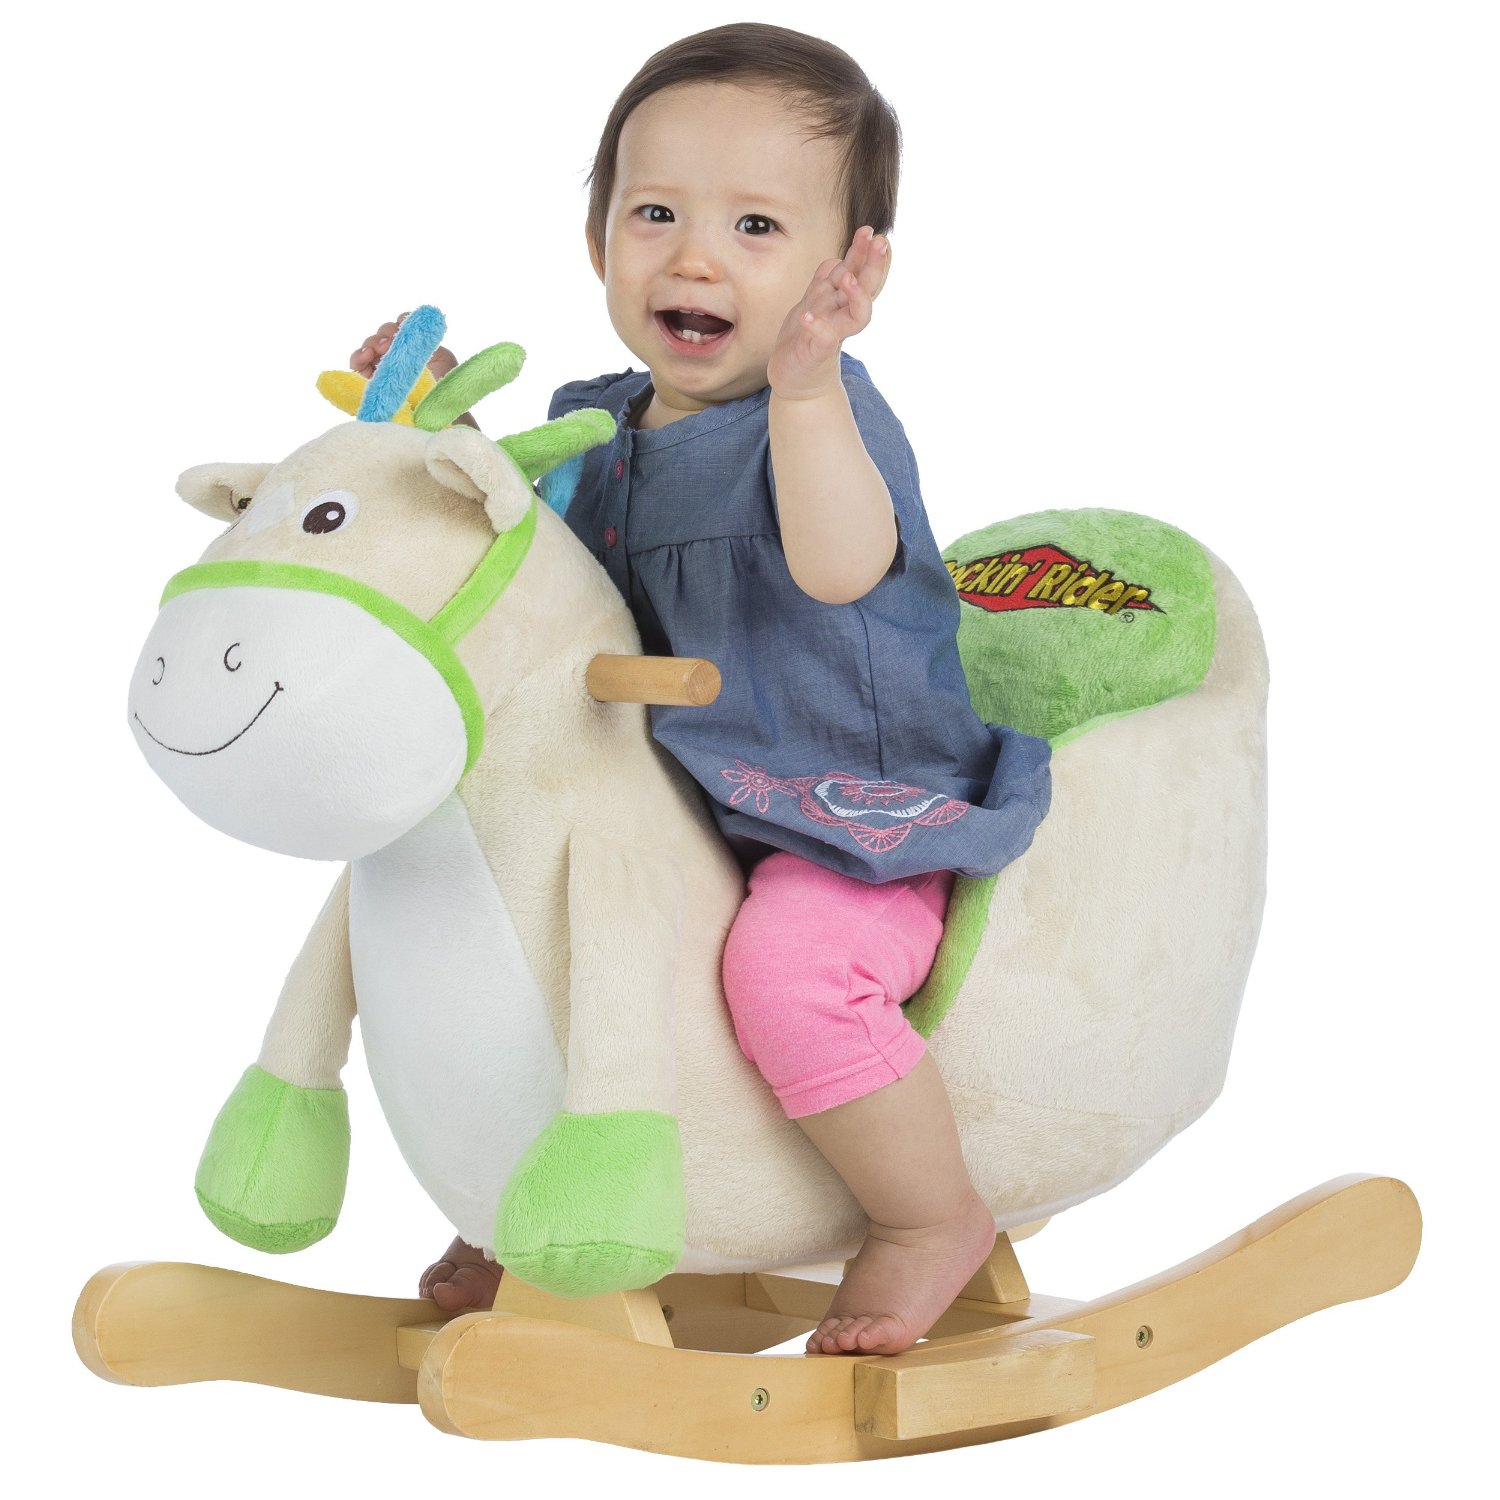 Baby and Toddler Ride Toys